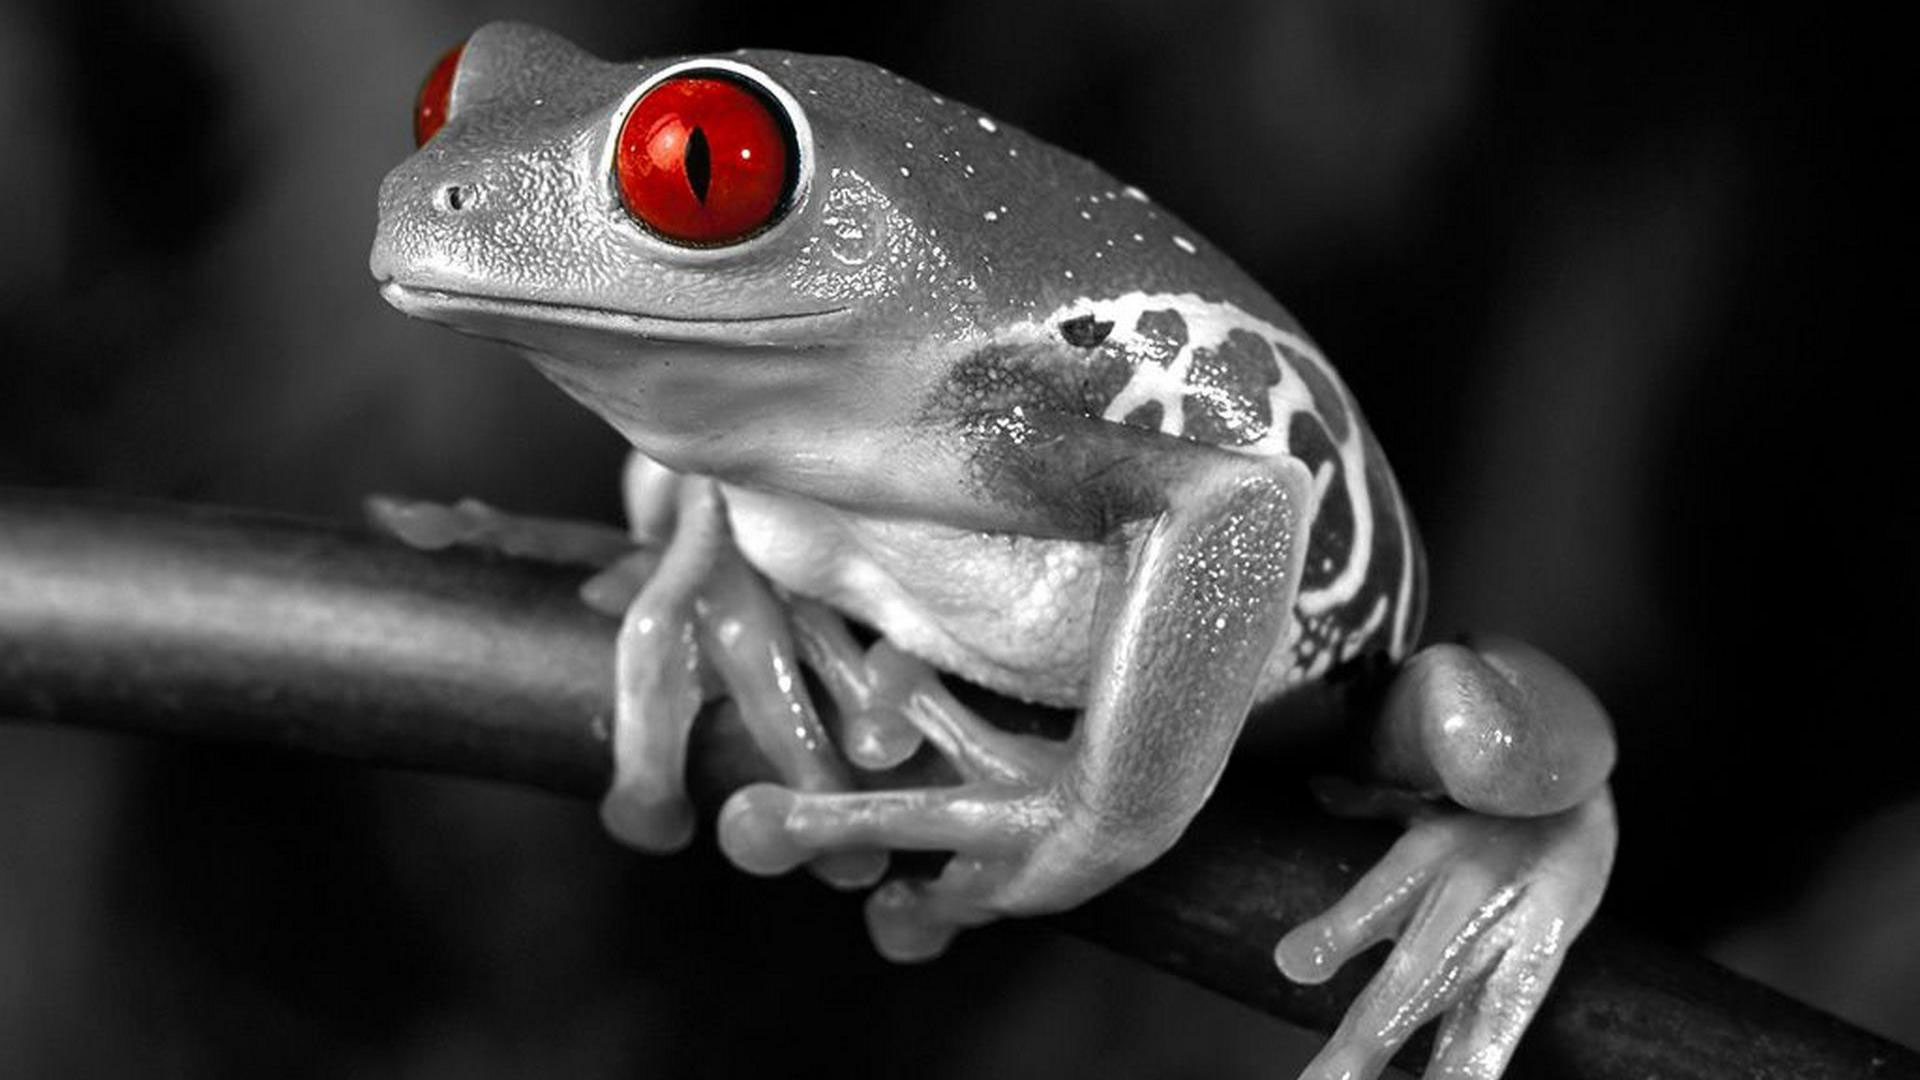 1920x1080 hd pics photos black and white frog red eye hd quality desktop background  wallpaper